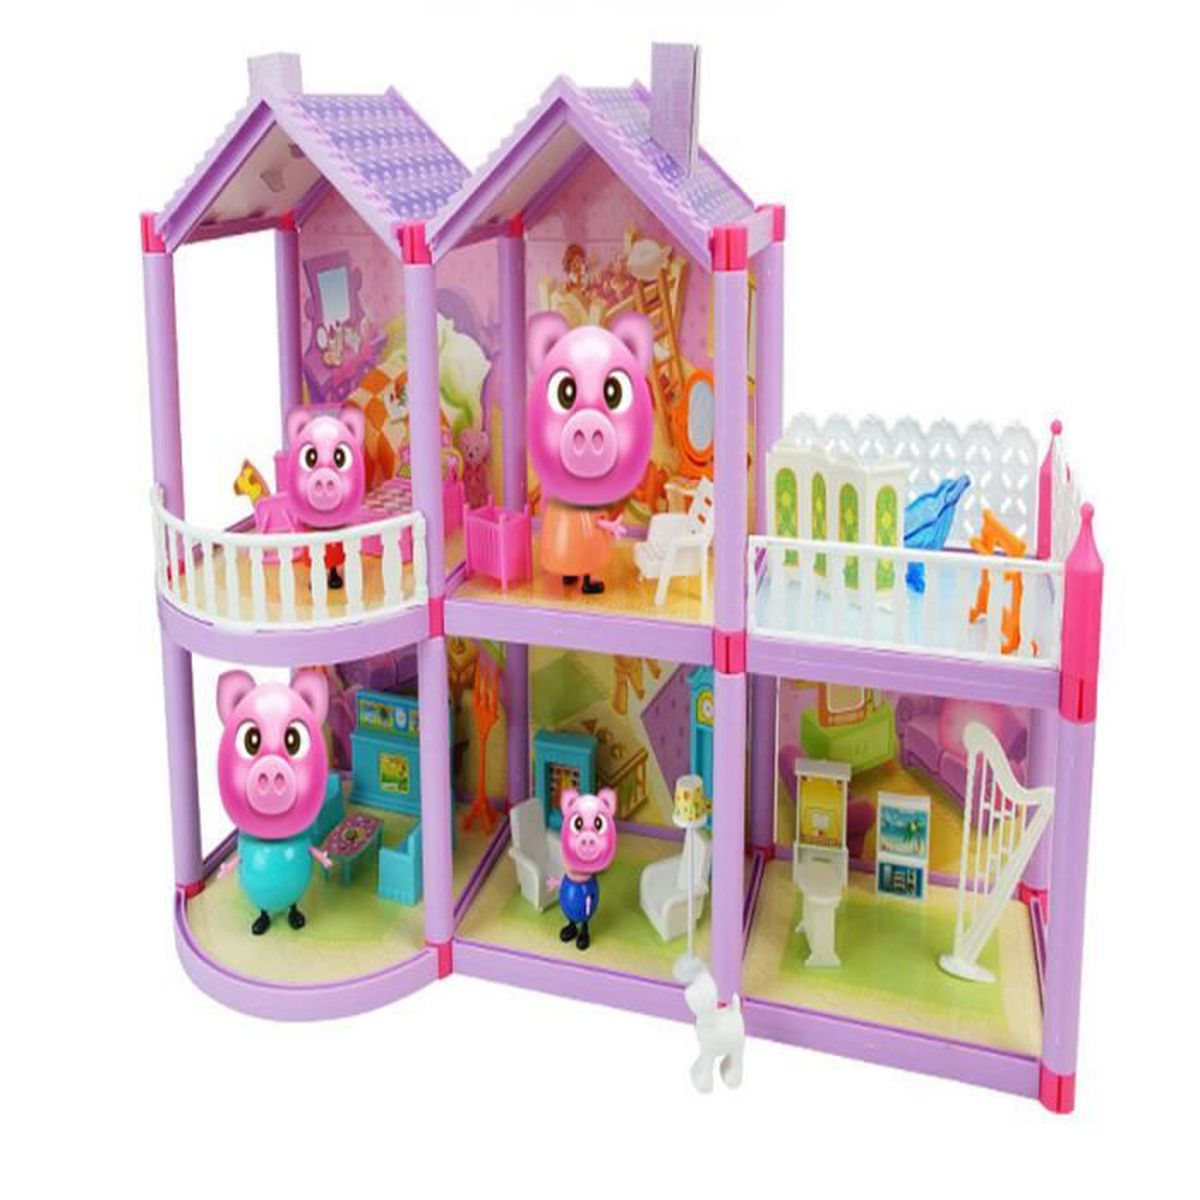 Peppa pig princesse suite maison d collection achat for Arielle d collection maison